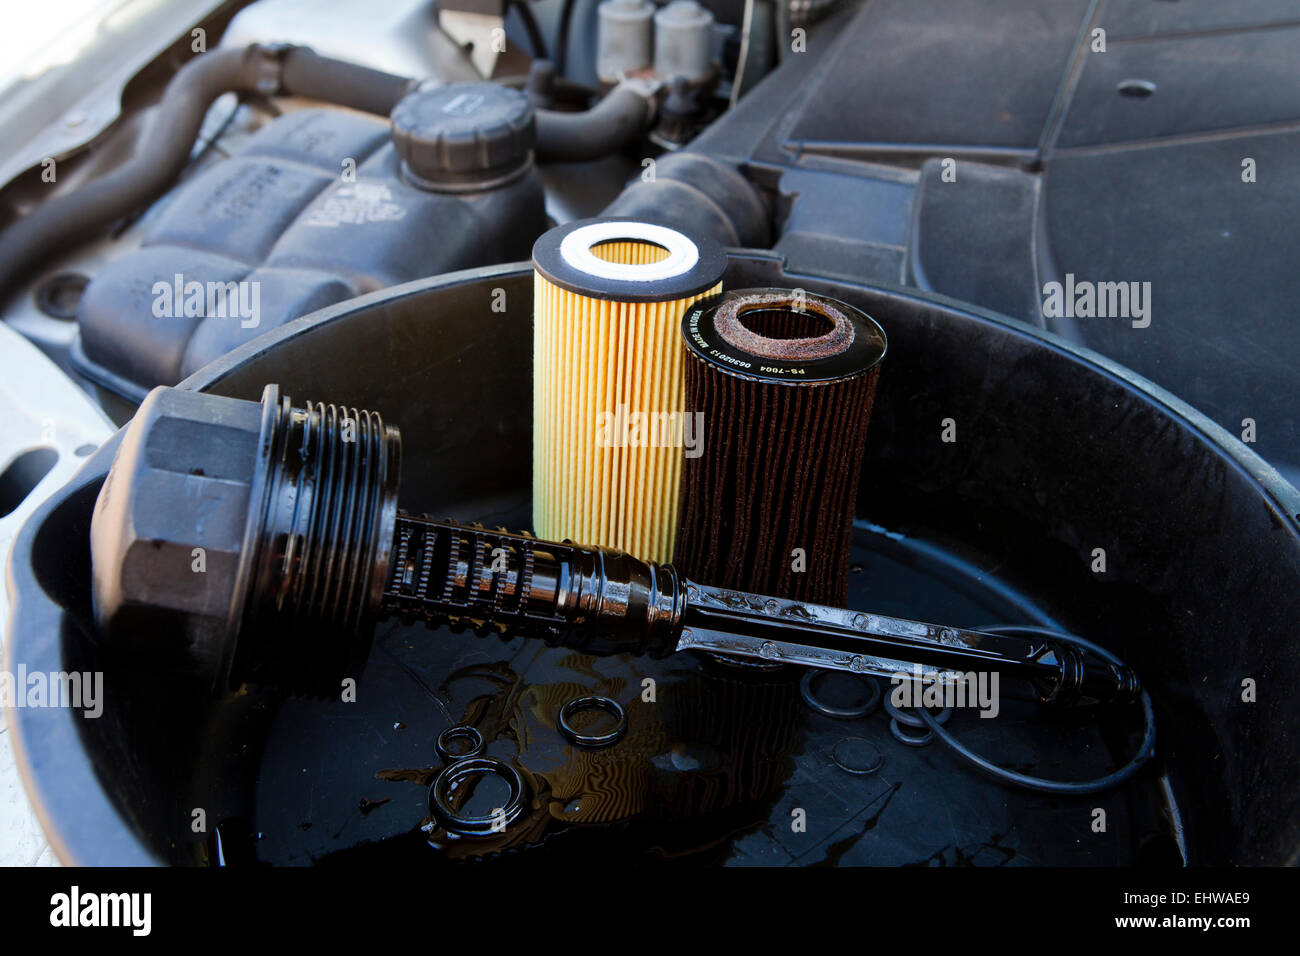 New and used motor oil filters in oil pan - USA - Stock Image